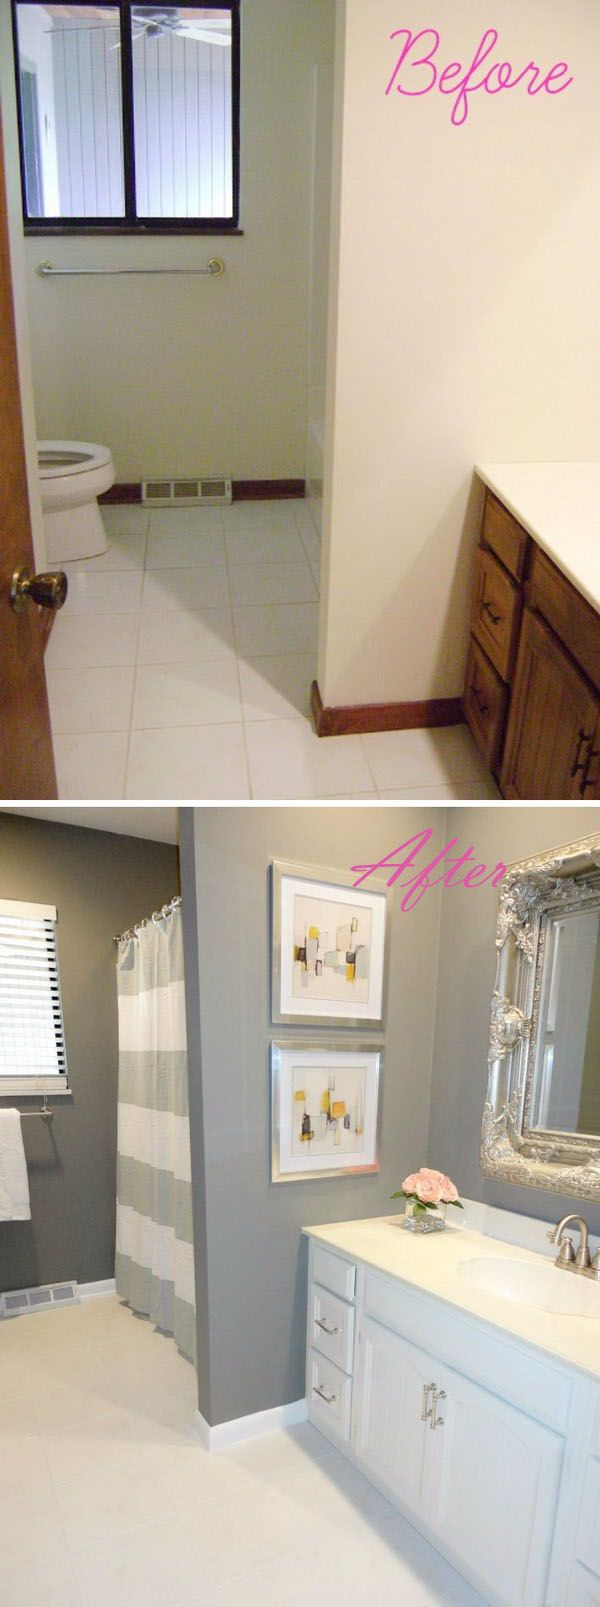 best 25 budget bathroom remodel ideas on pinterest budget before and after 20 awesome bathroom makeovers